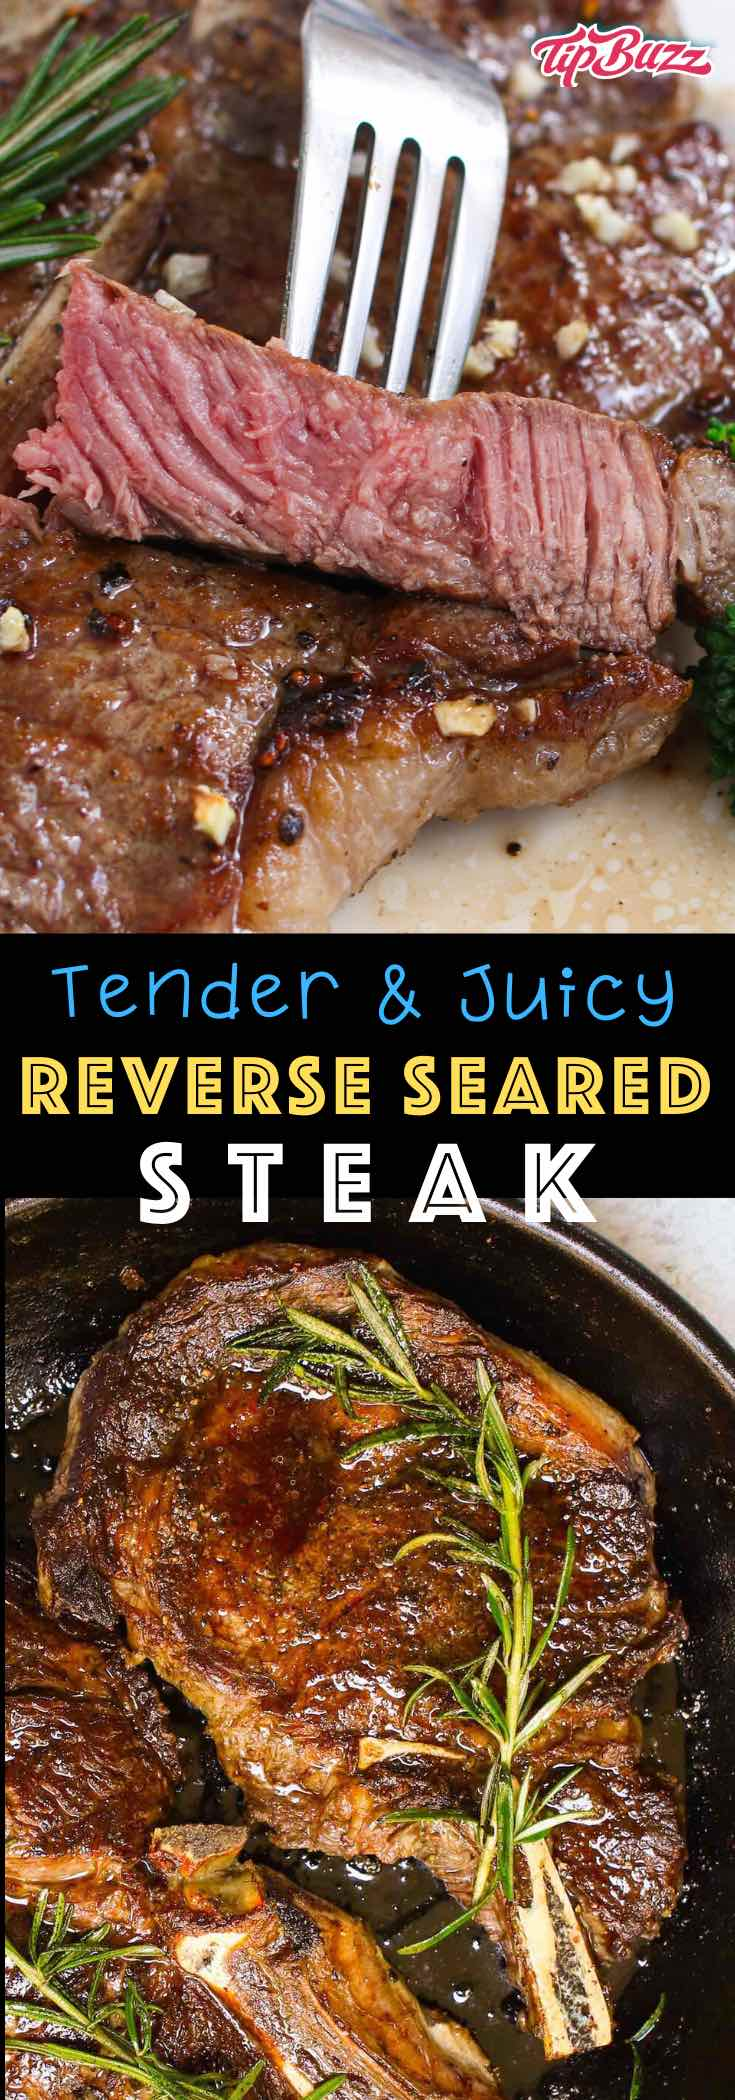 Reverse Sear a Steak - learn how to make the most tender and juicy steak using a reverse sear in the oven or on the grill  #reversesear